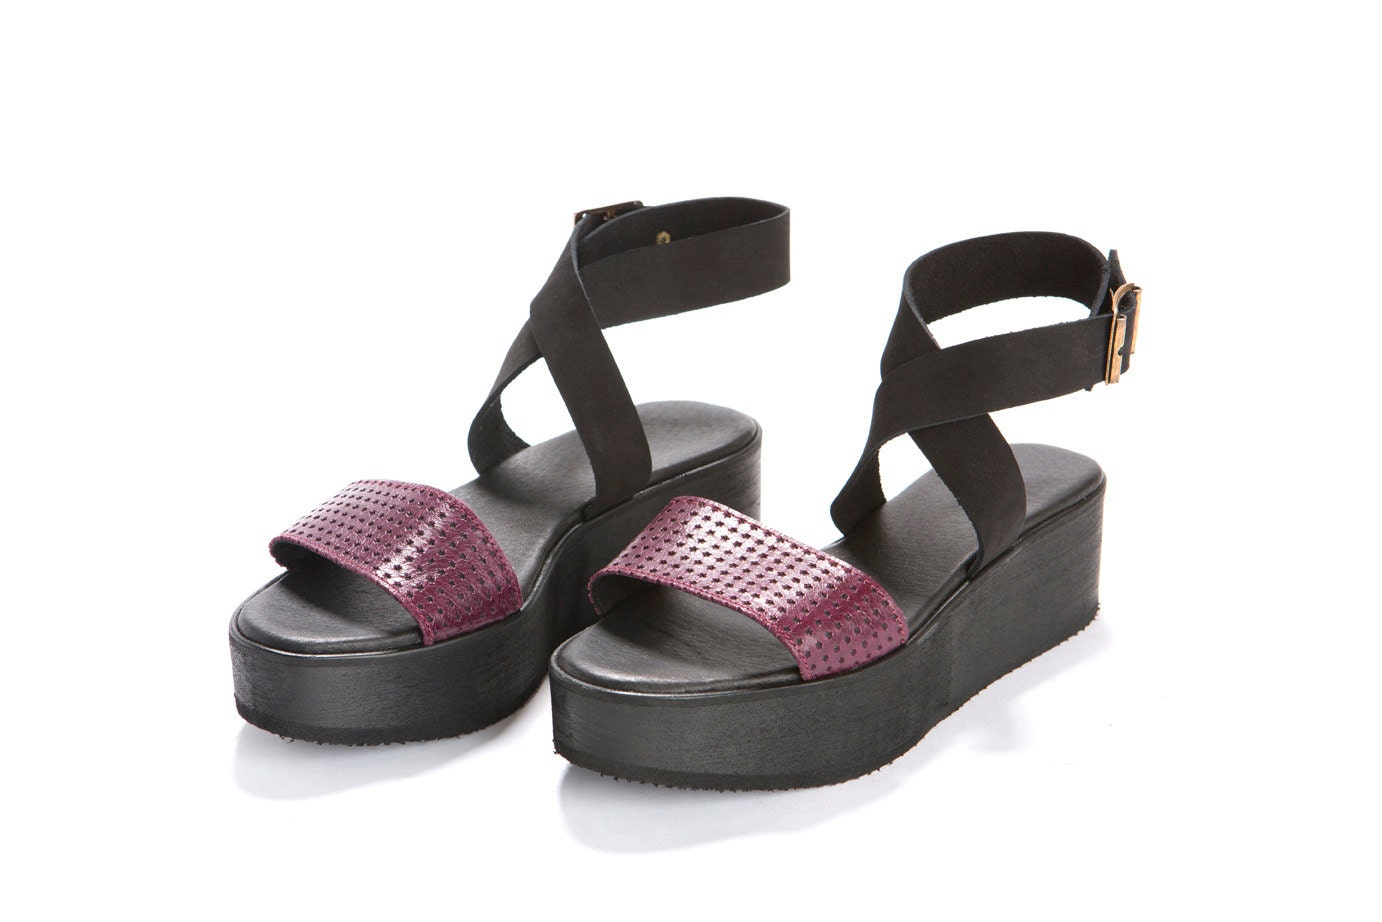 Summer shoes.Purple and black shoes. Platform sandal, leather straps, with a buckle closing around the ankle. - ImeldaShoes